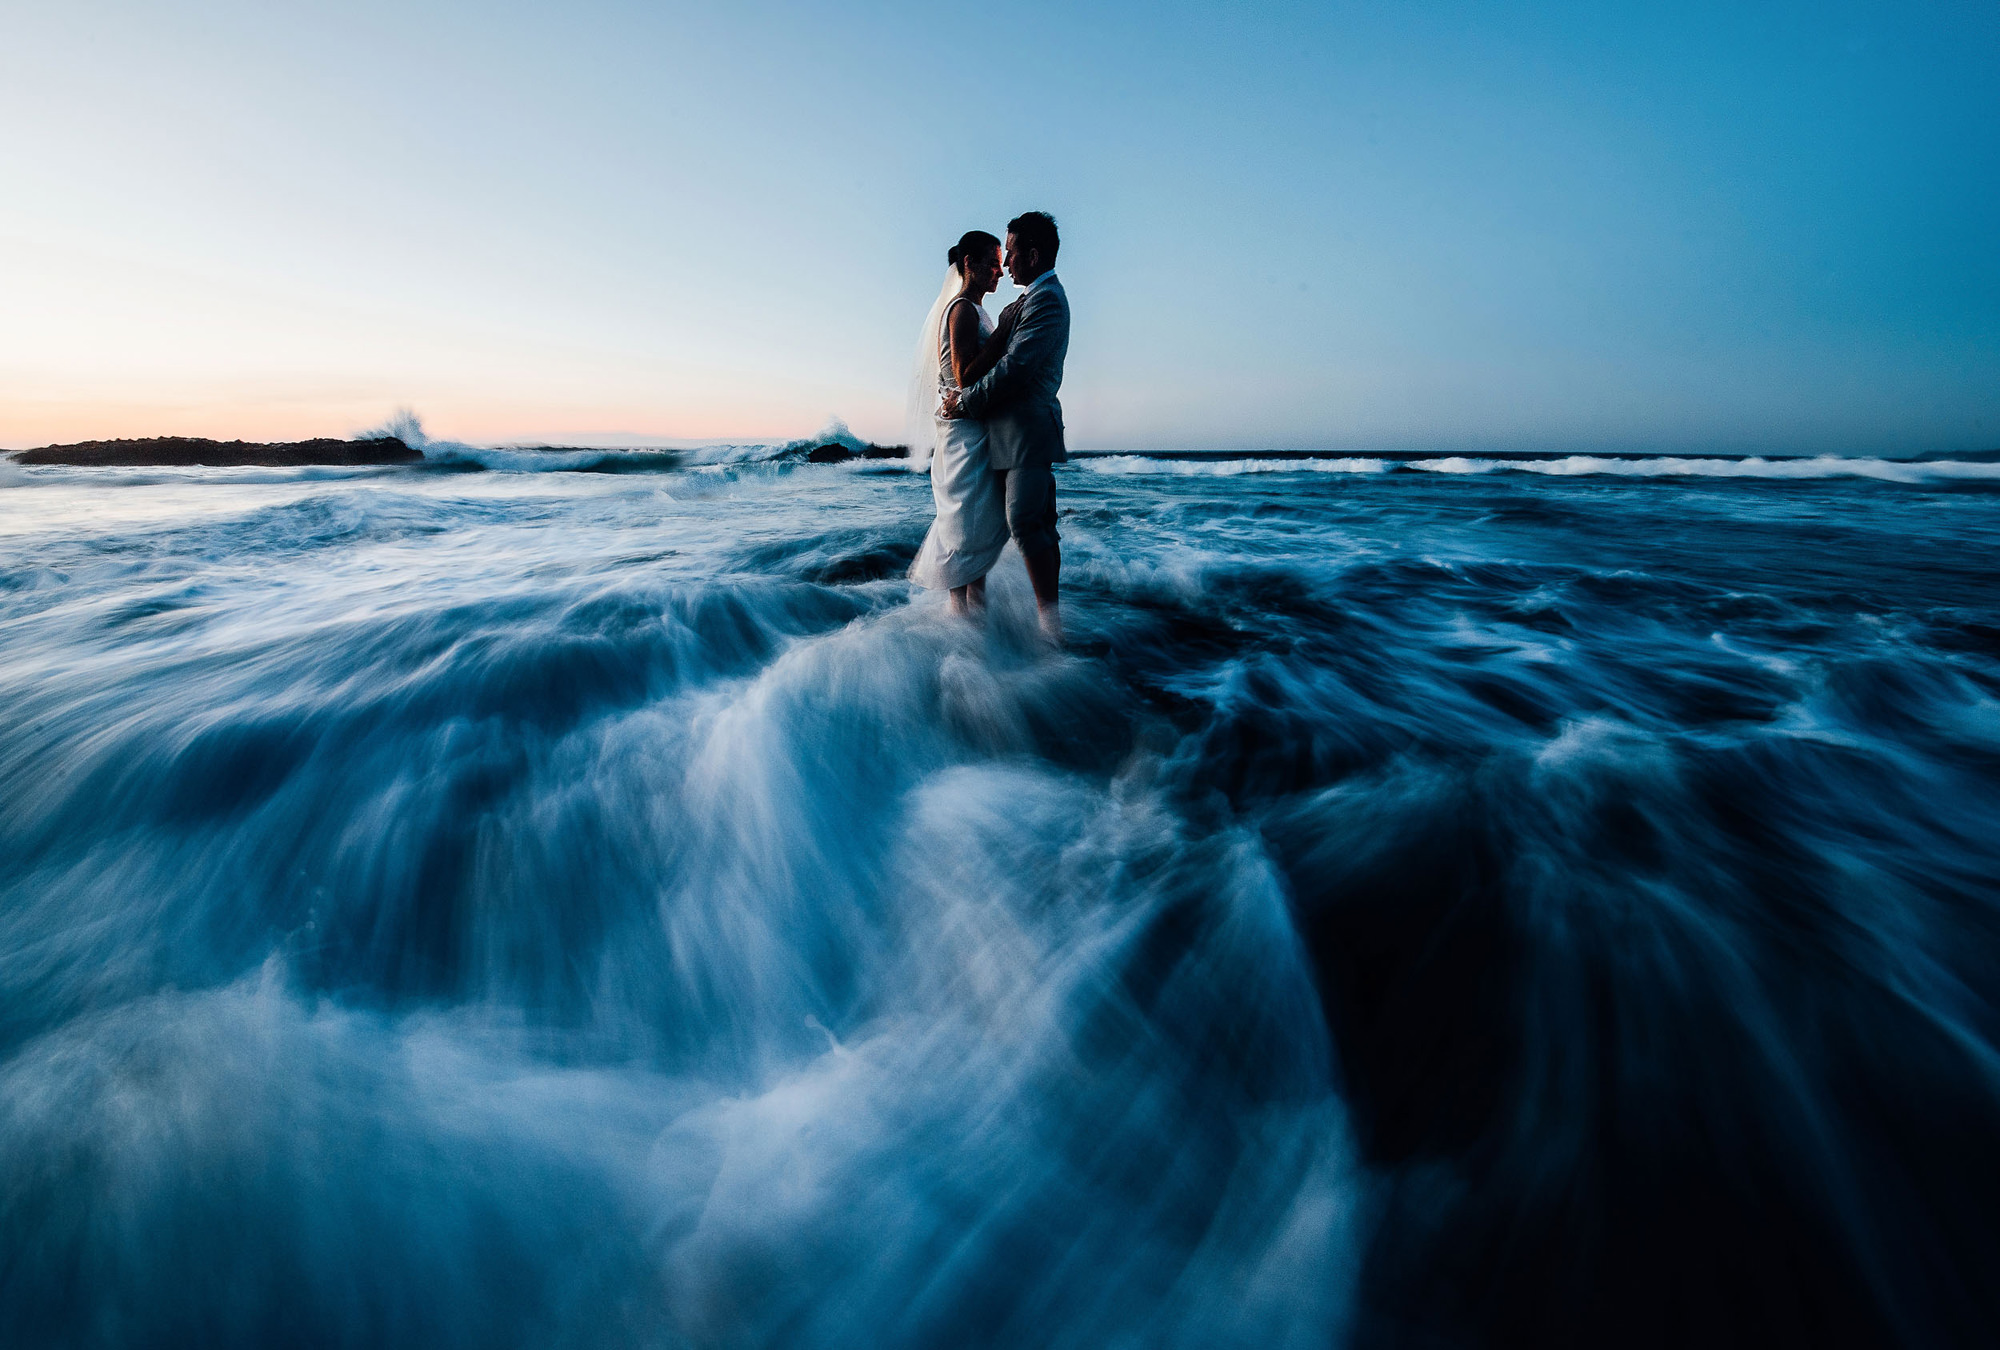 Slow exposure of couple standing in ocean waves - photo by The Brenizers